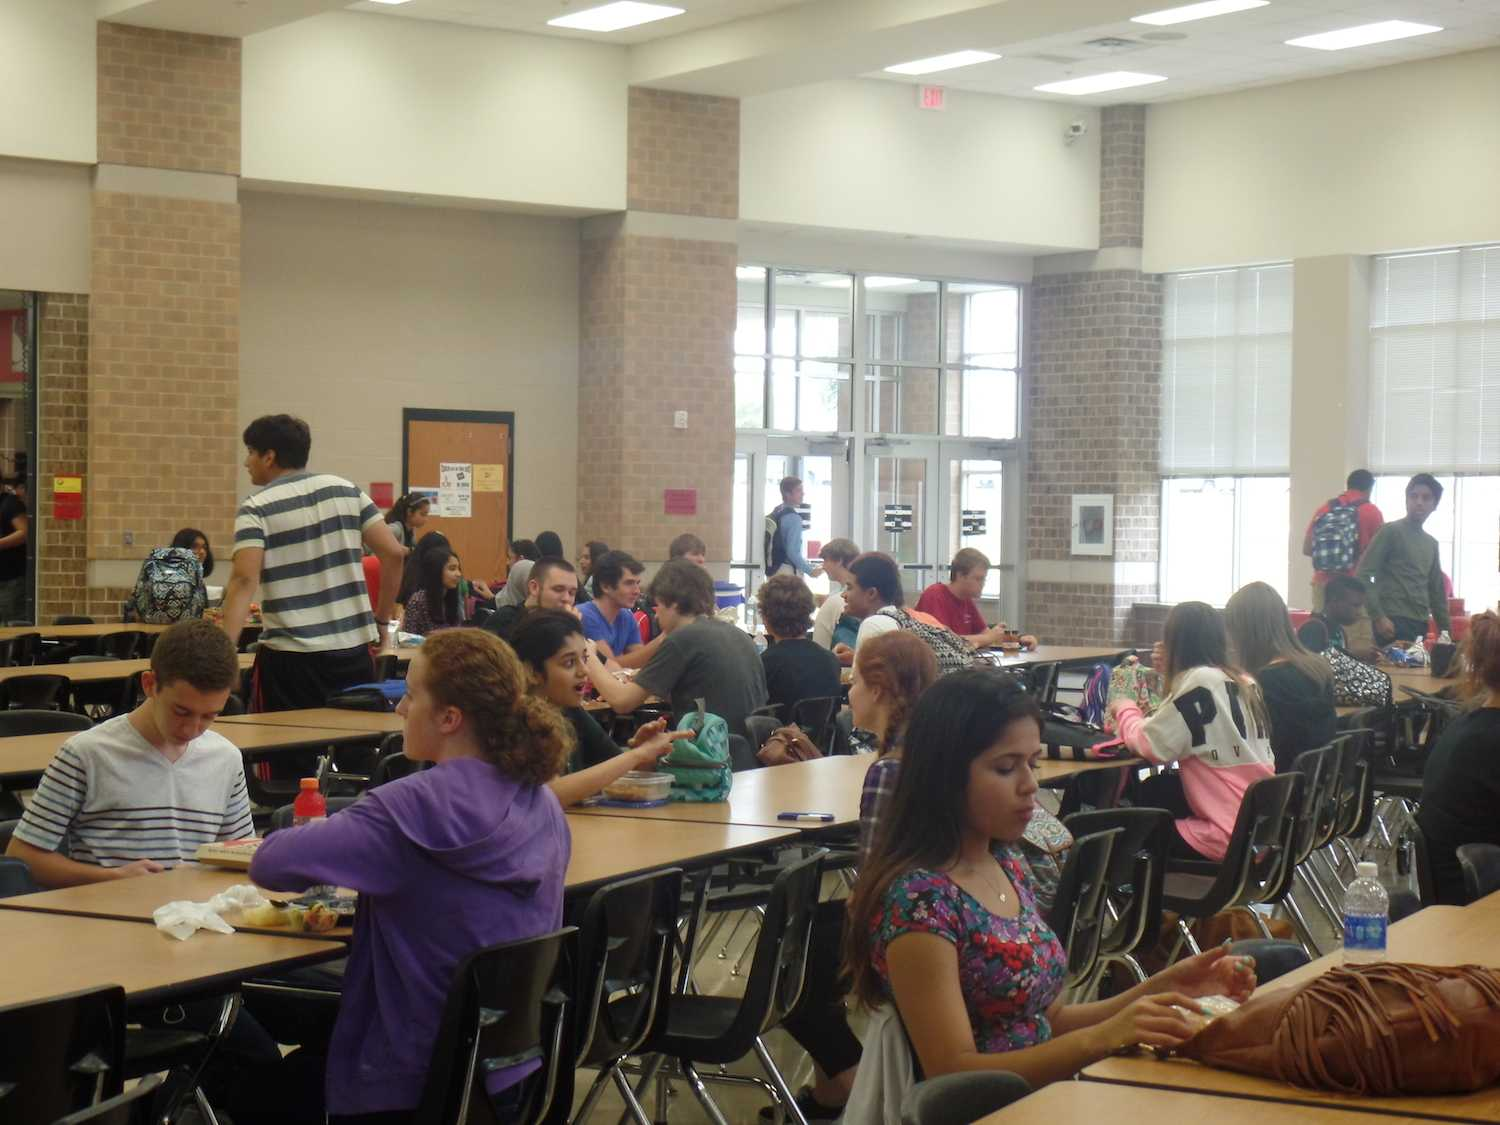 Freshmen students have used lunches as opportunities to make new friends and connect with peers.